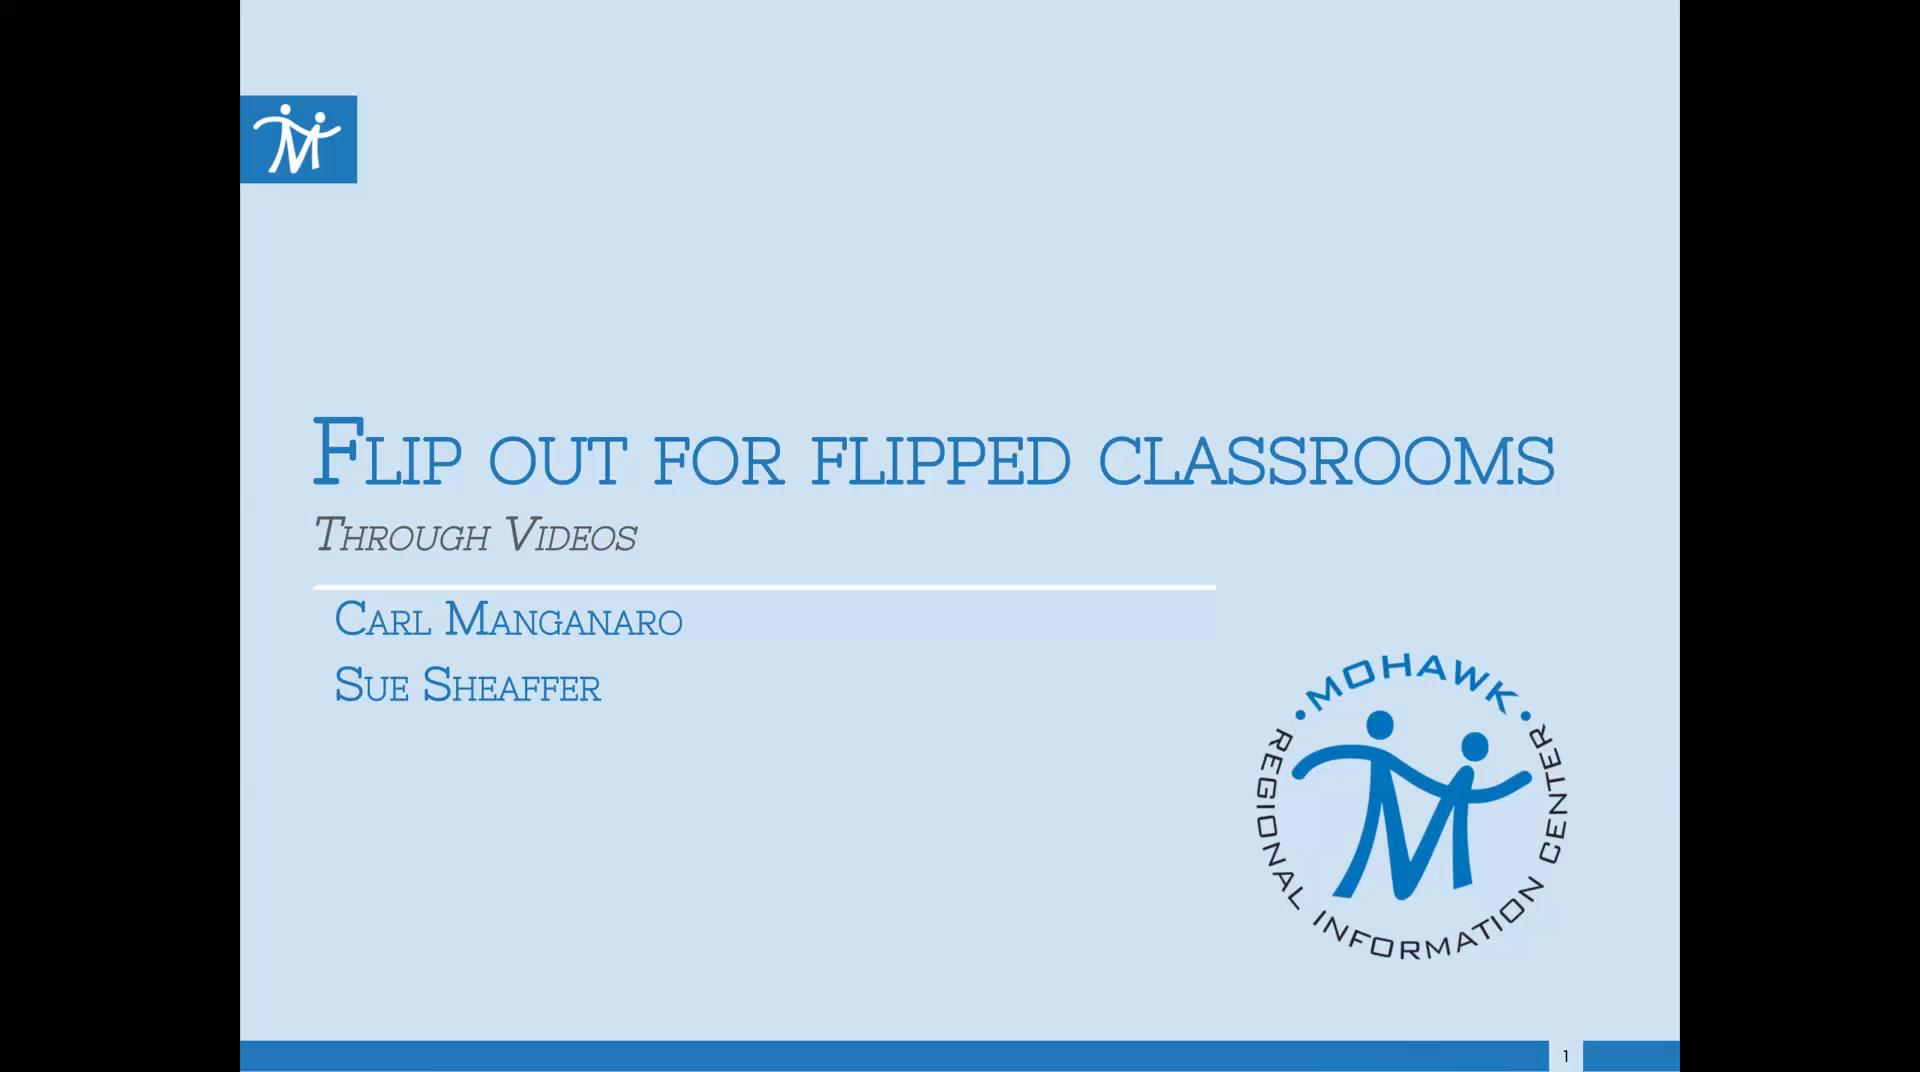 Flip Out for Flipped Classroom Through Video